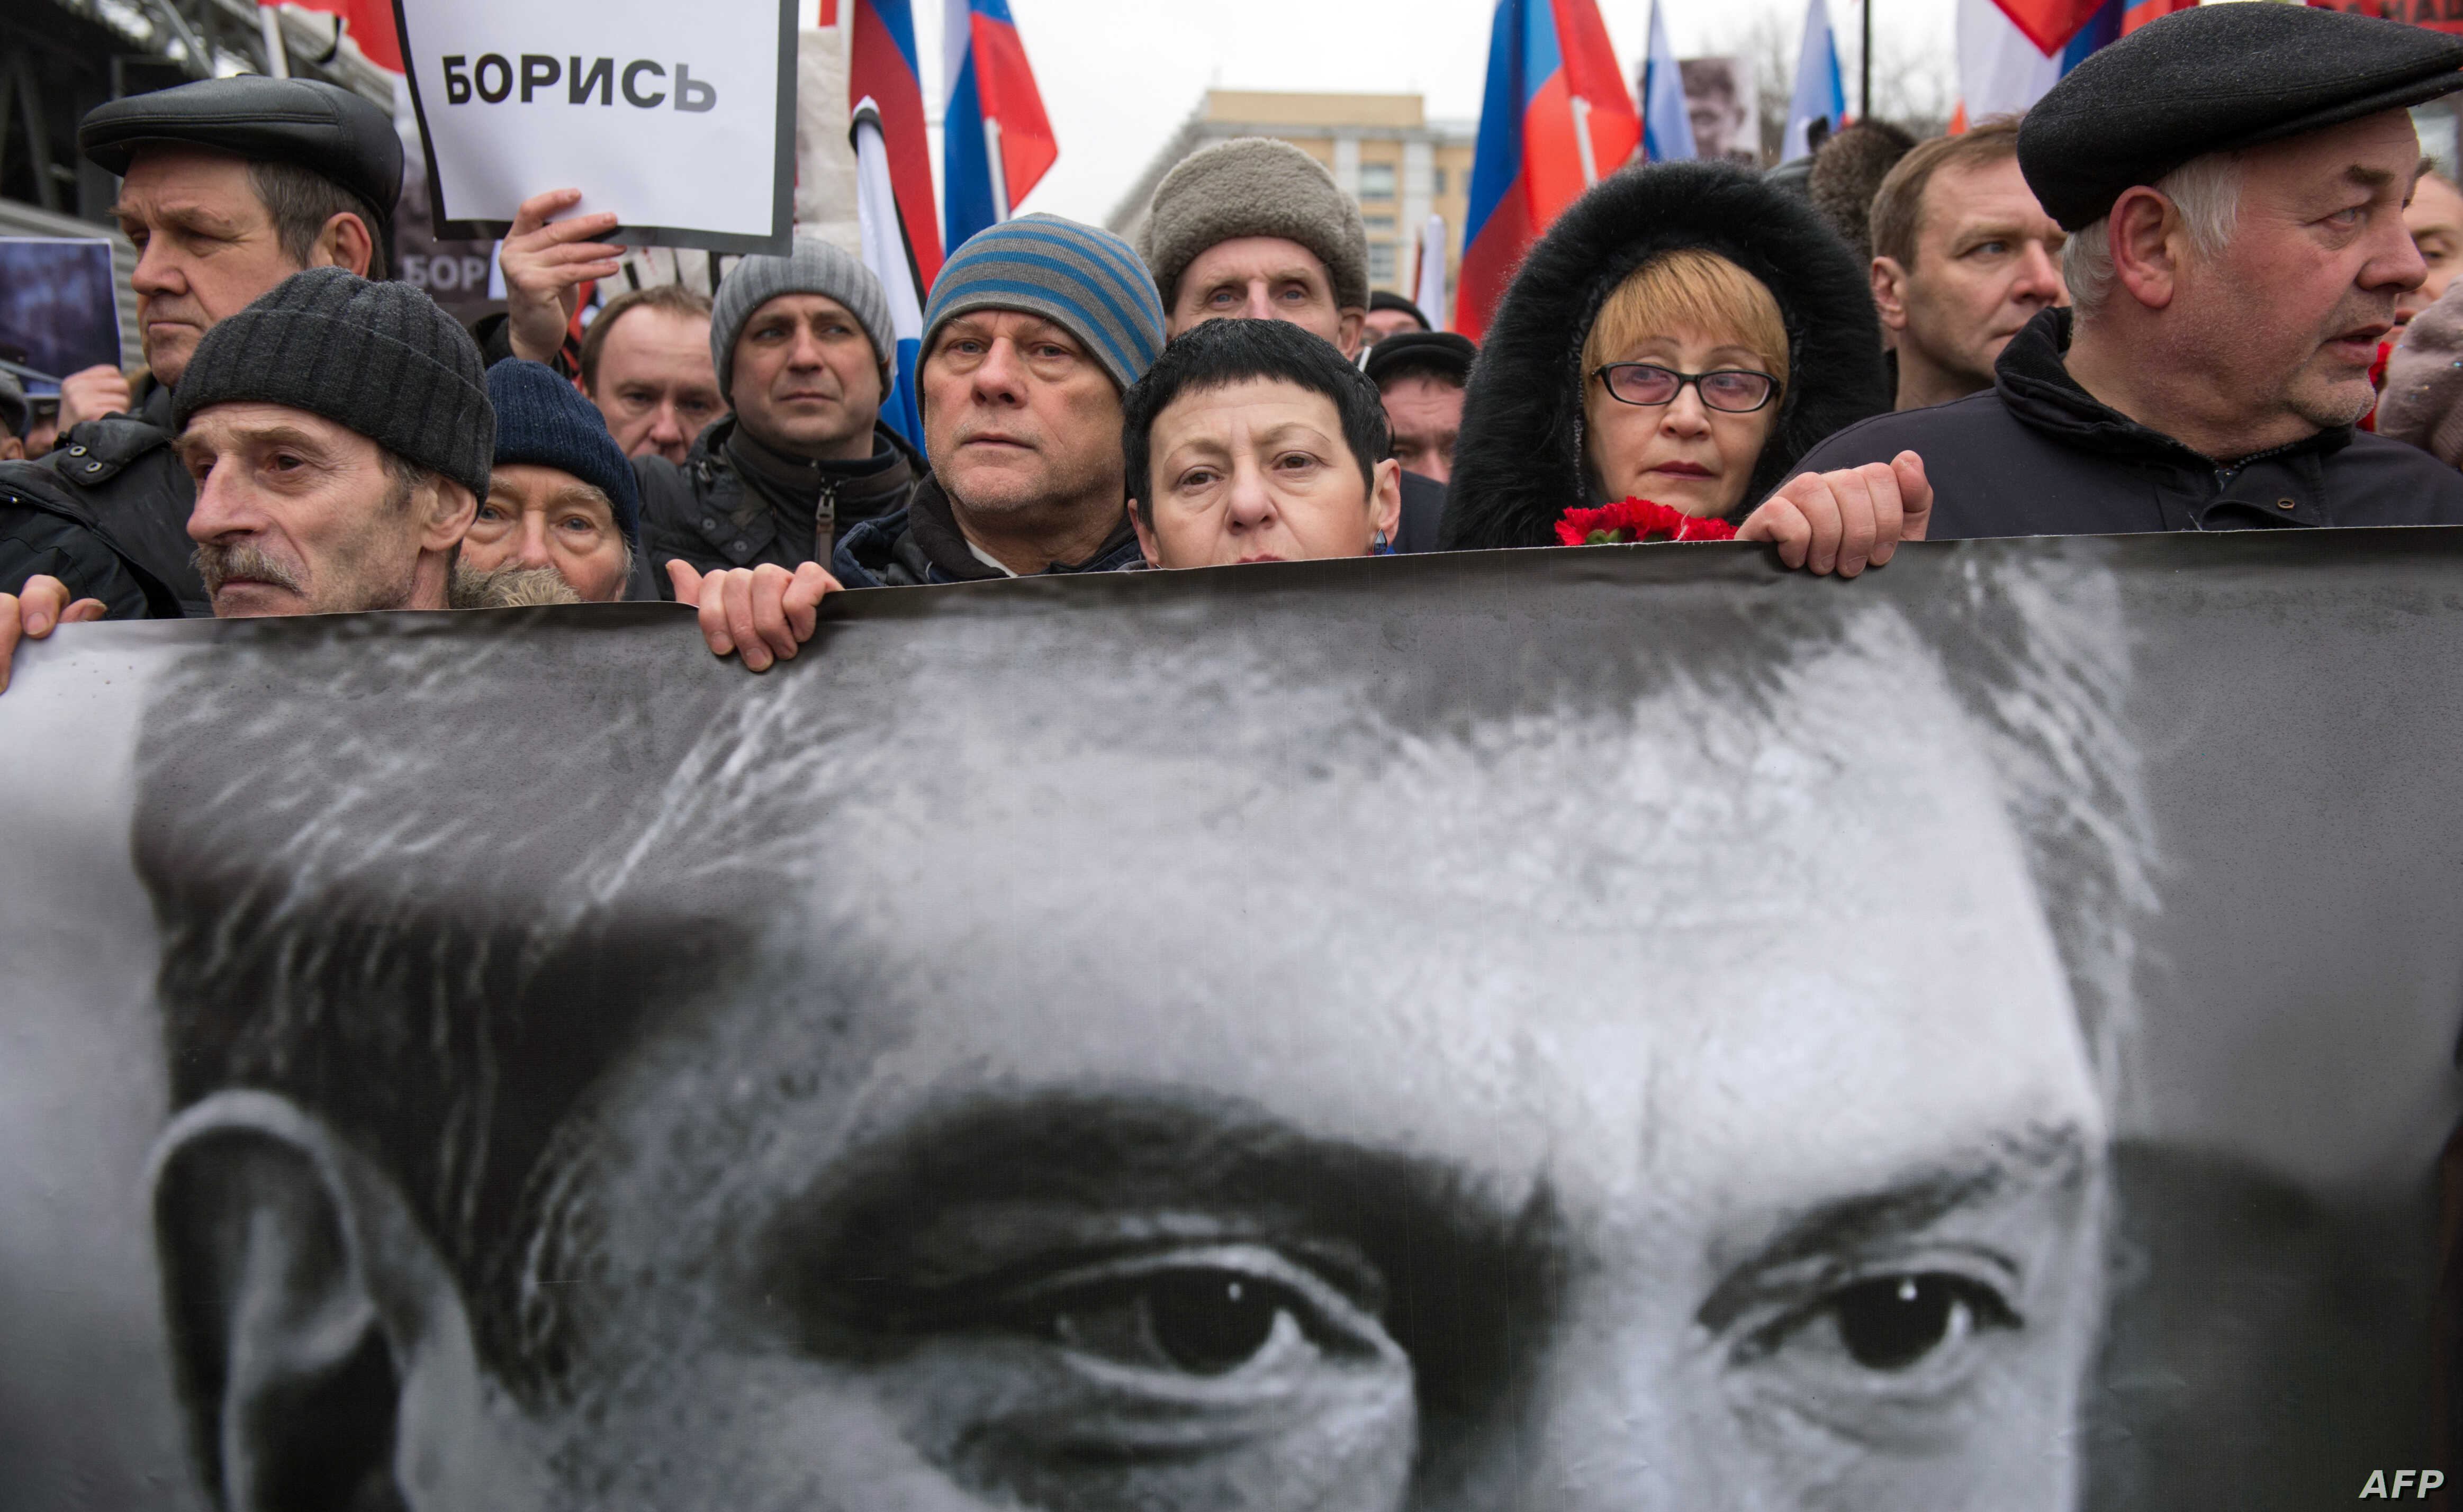 FILE - Russia's opposition supporters carrying a banner bearing a portrait of Kremlin critic Boris Nemtsov during a march in central Moscow, March 1, 2015.